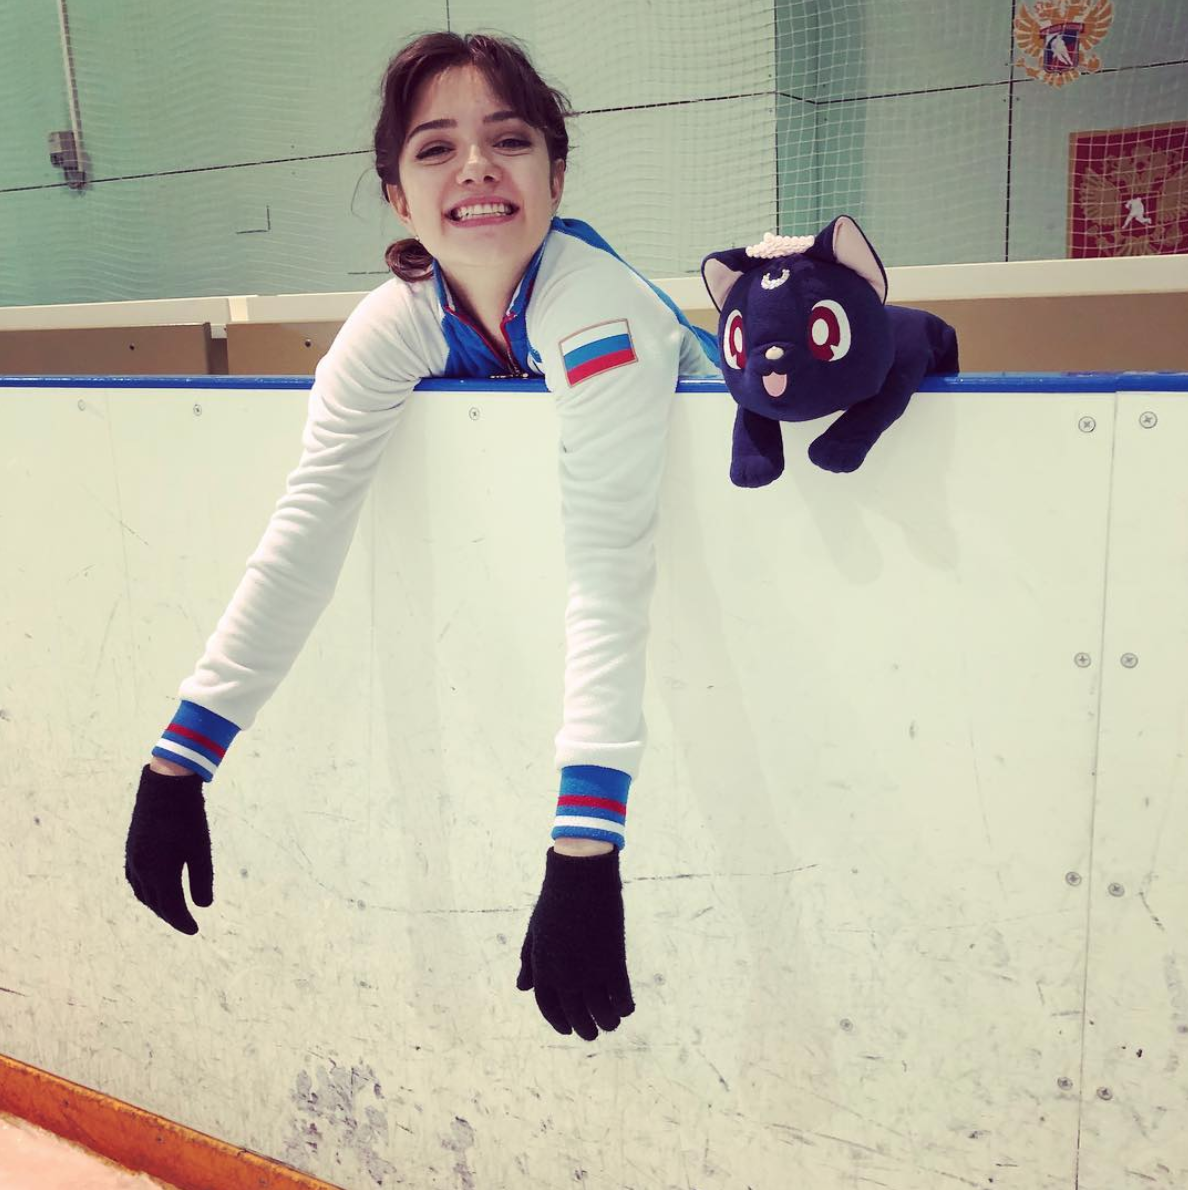 Evgenia Medvedeva at practice for the Russian Test Skates ( Photo Credit )